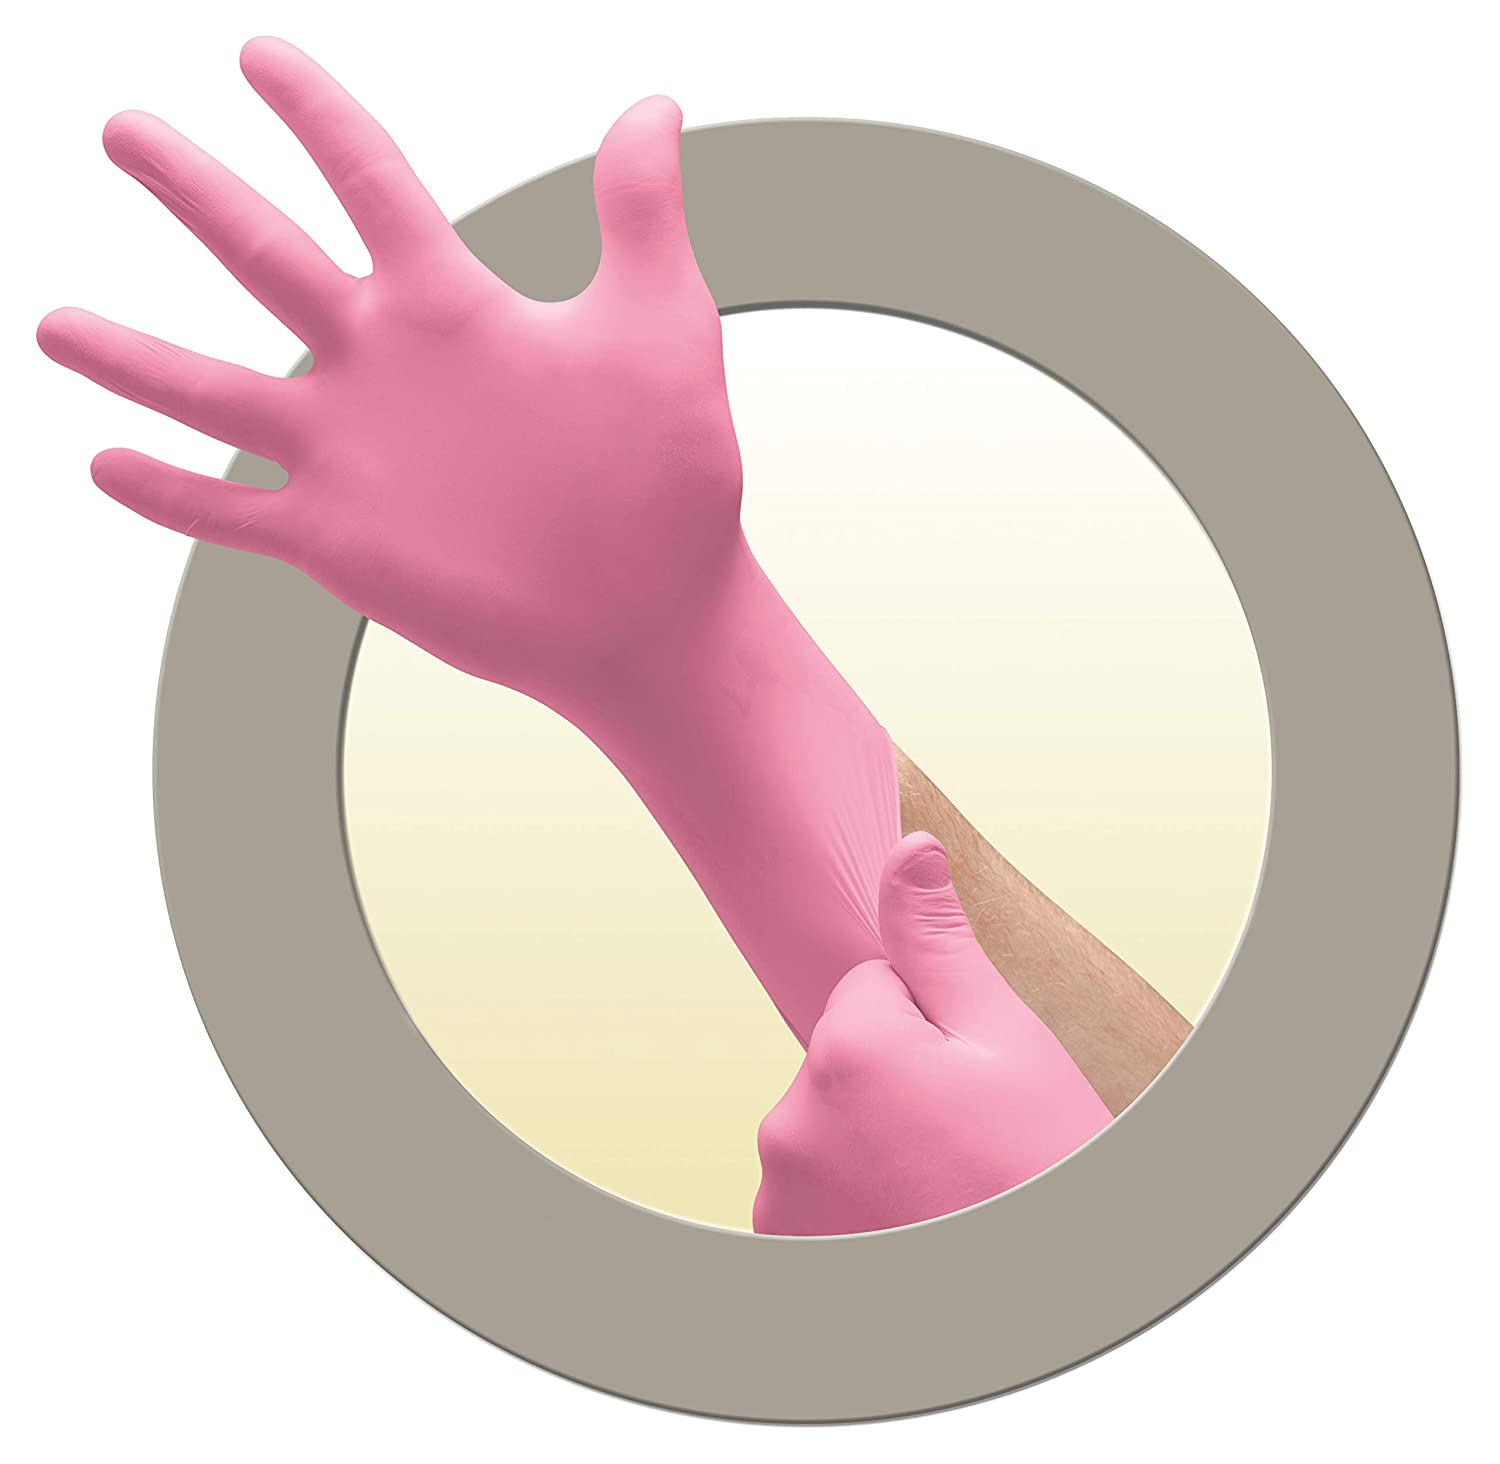 Microflex ColorTouch Latex Gloves - Disposable, Exam Grade, Pink, Size Small (pack of 100)